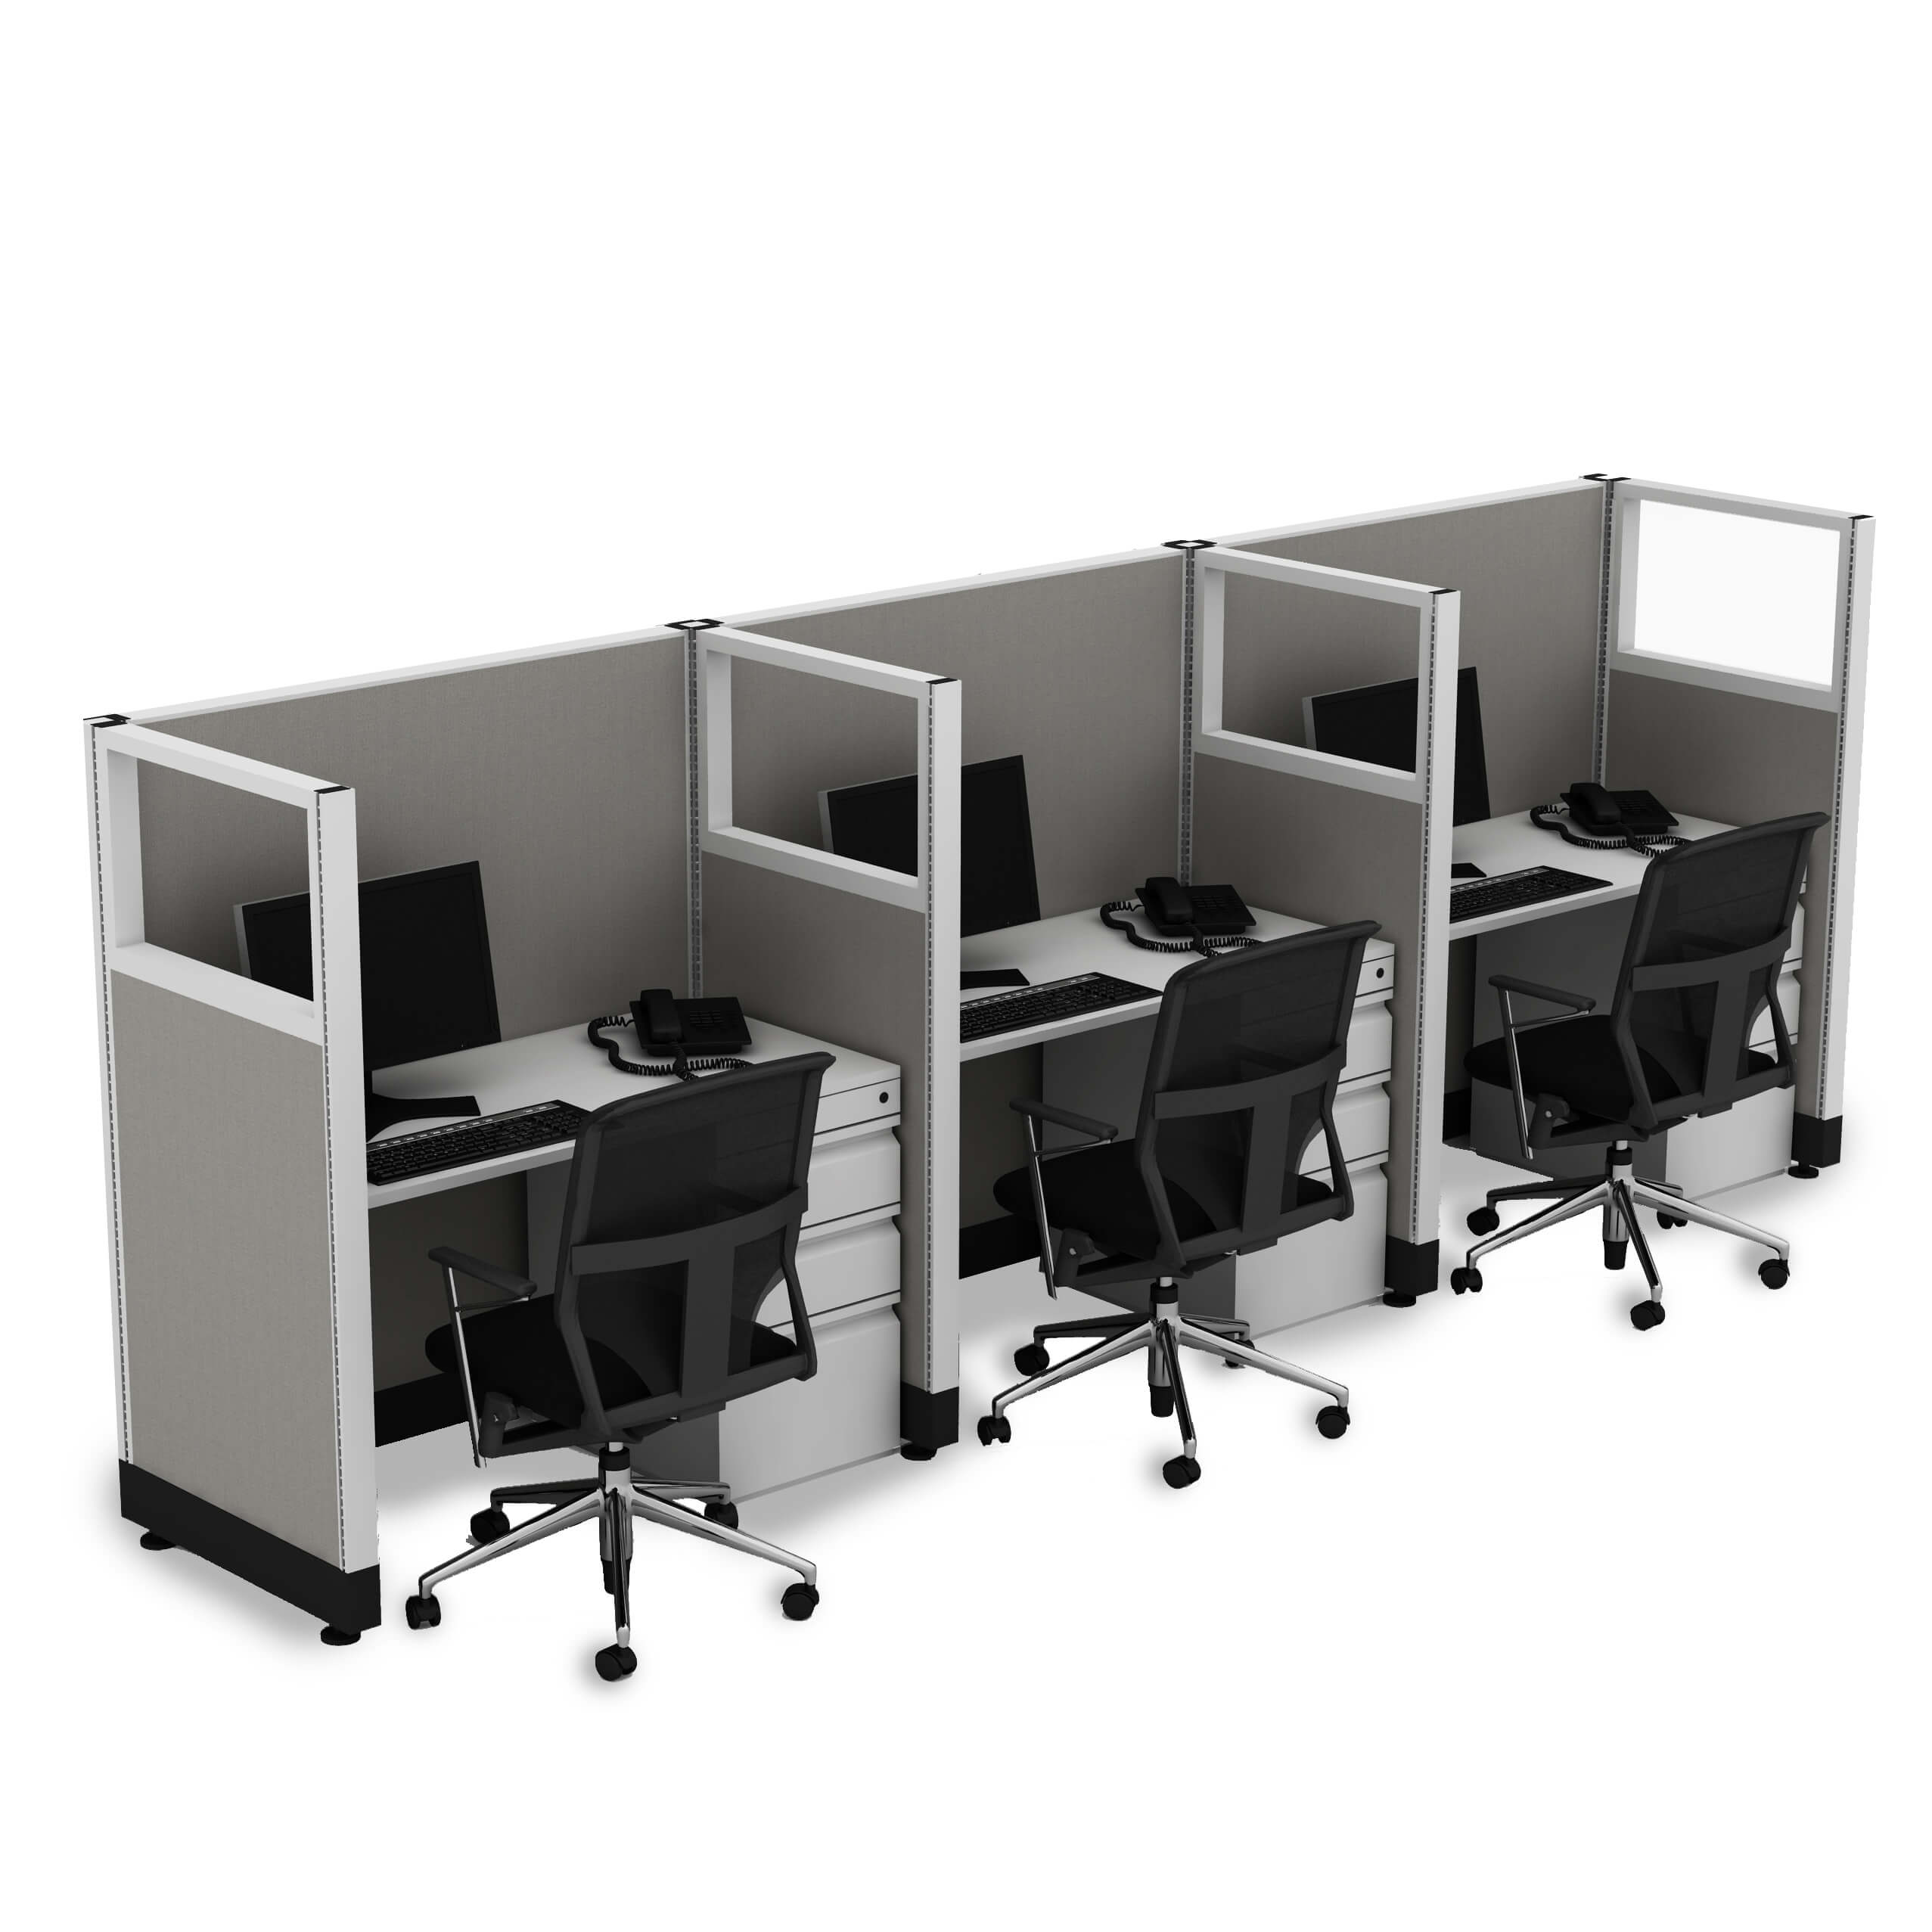 hot-desking-cubicle-workstations-3-pack-powered.jpg